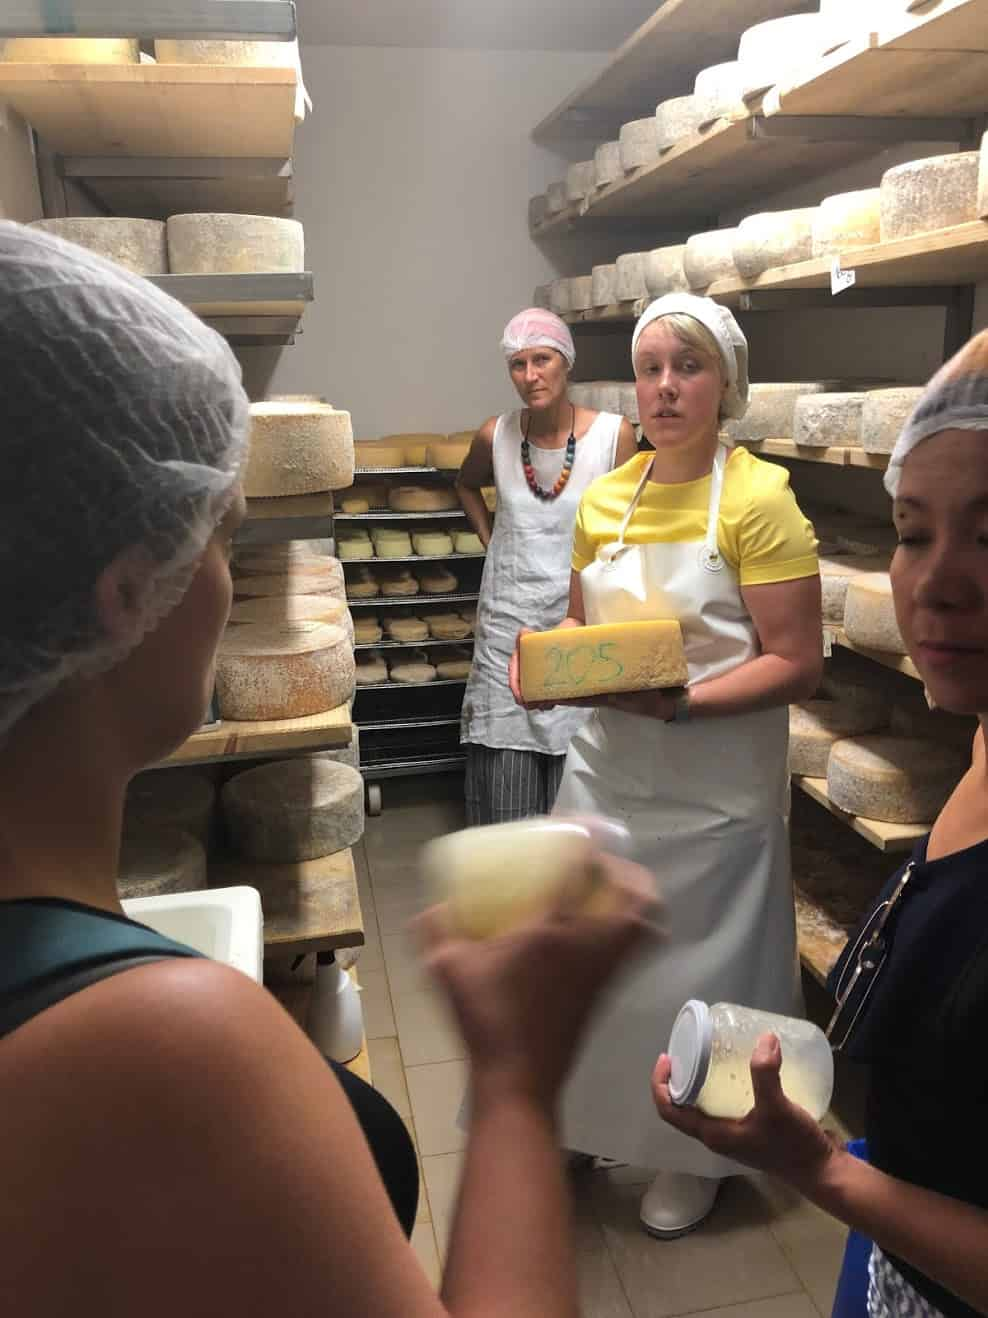 A cheesemaker explains how she makes her cheese in Trentino.